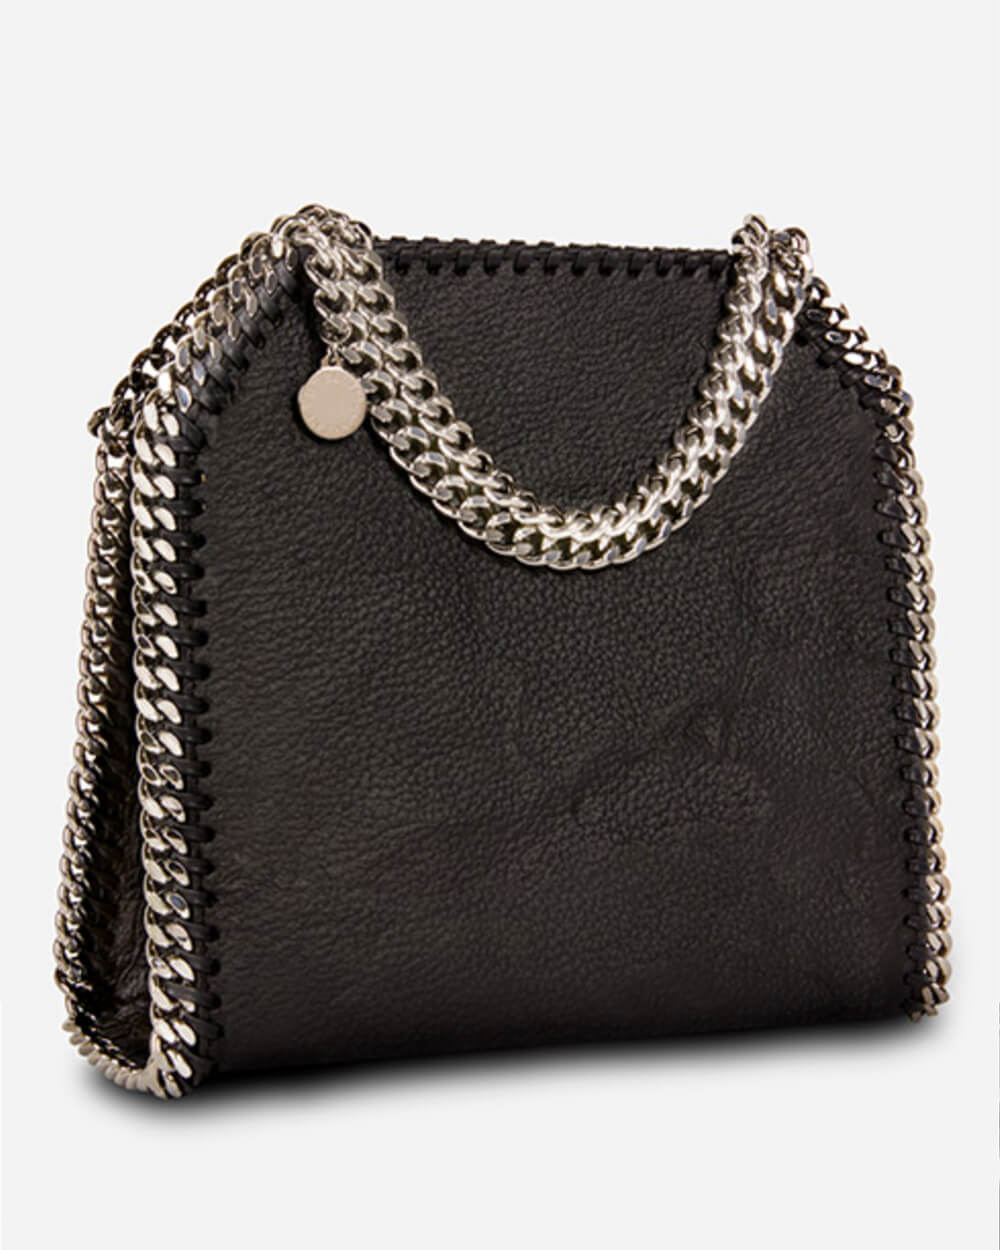 Stella McCarney's famous Falabella bag made from mushroom leather